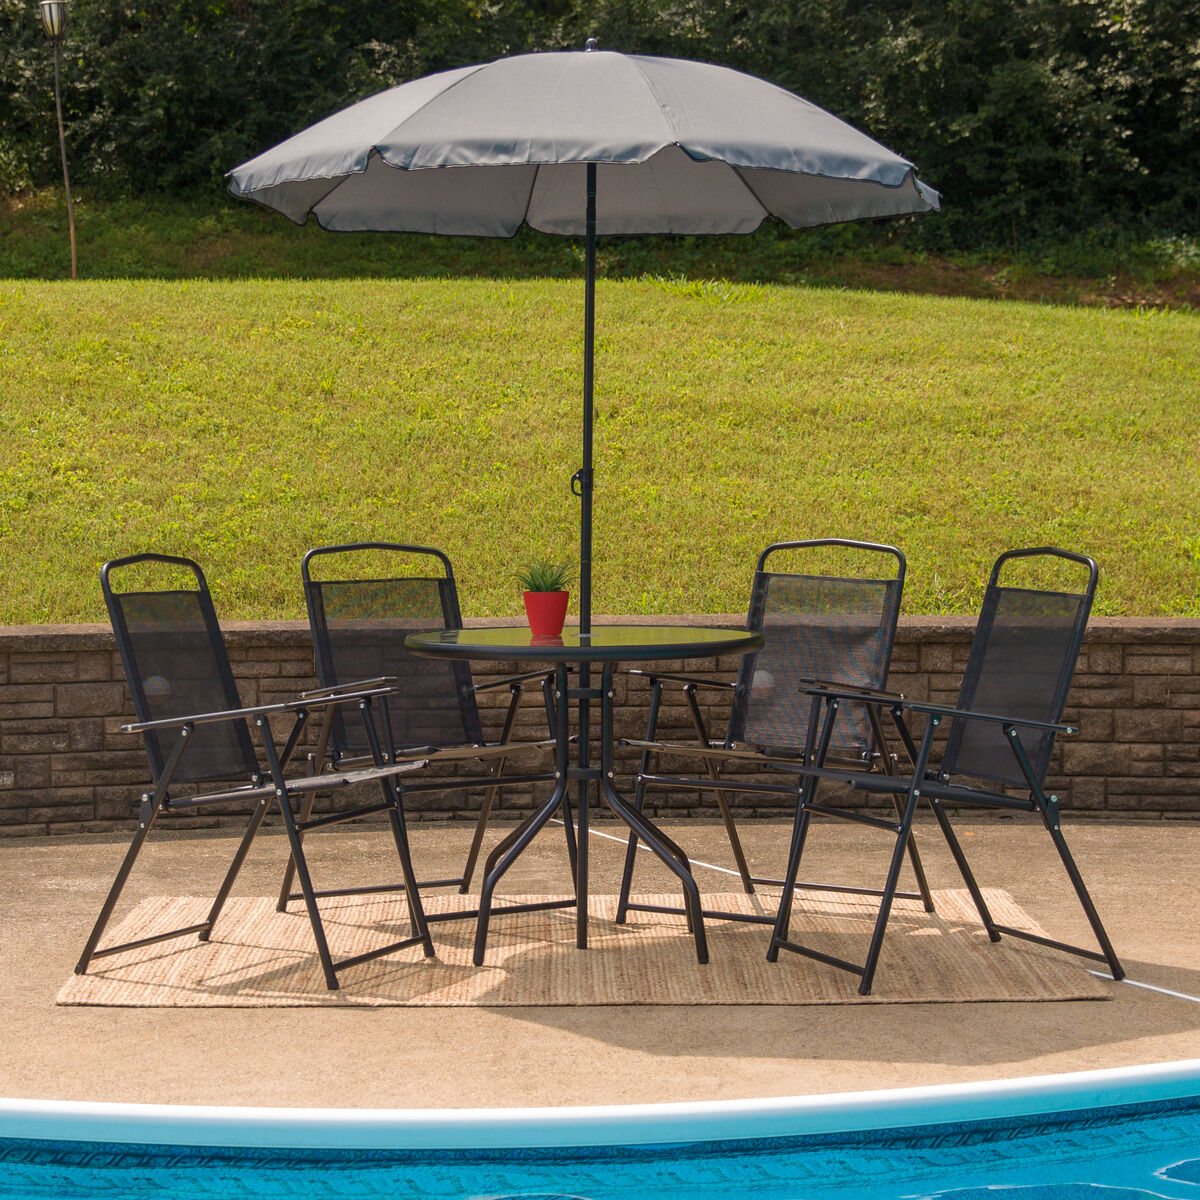 Our Nantucket 6 Piece Black Patio Garden Set With Table Umbrella And 4 Folding Chairs